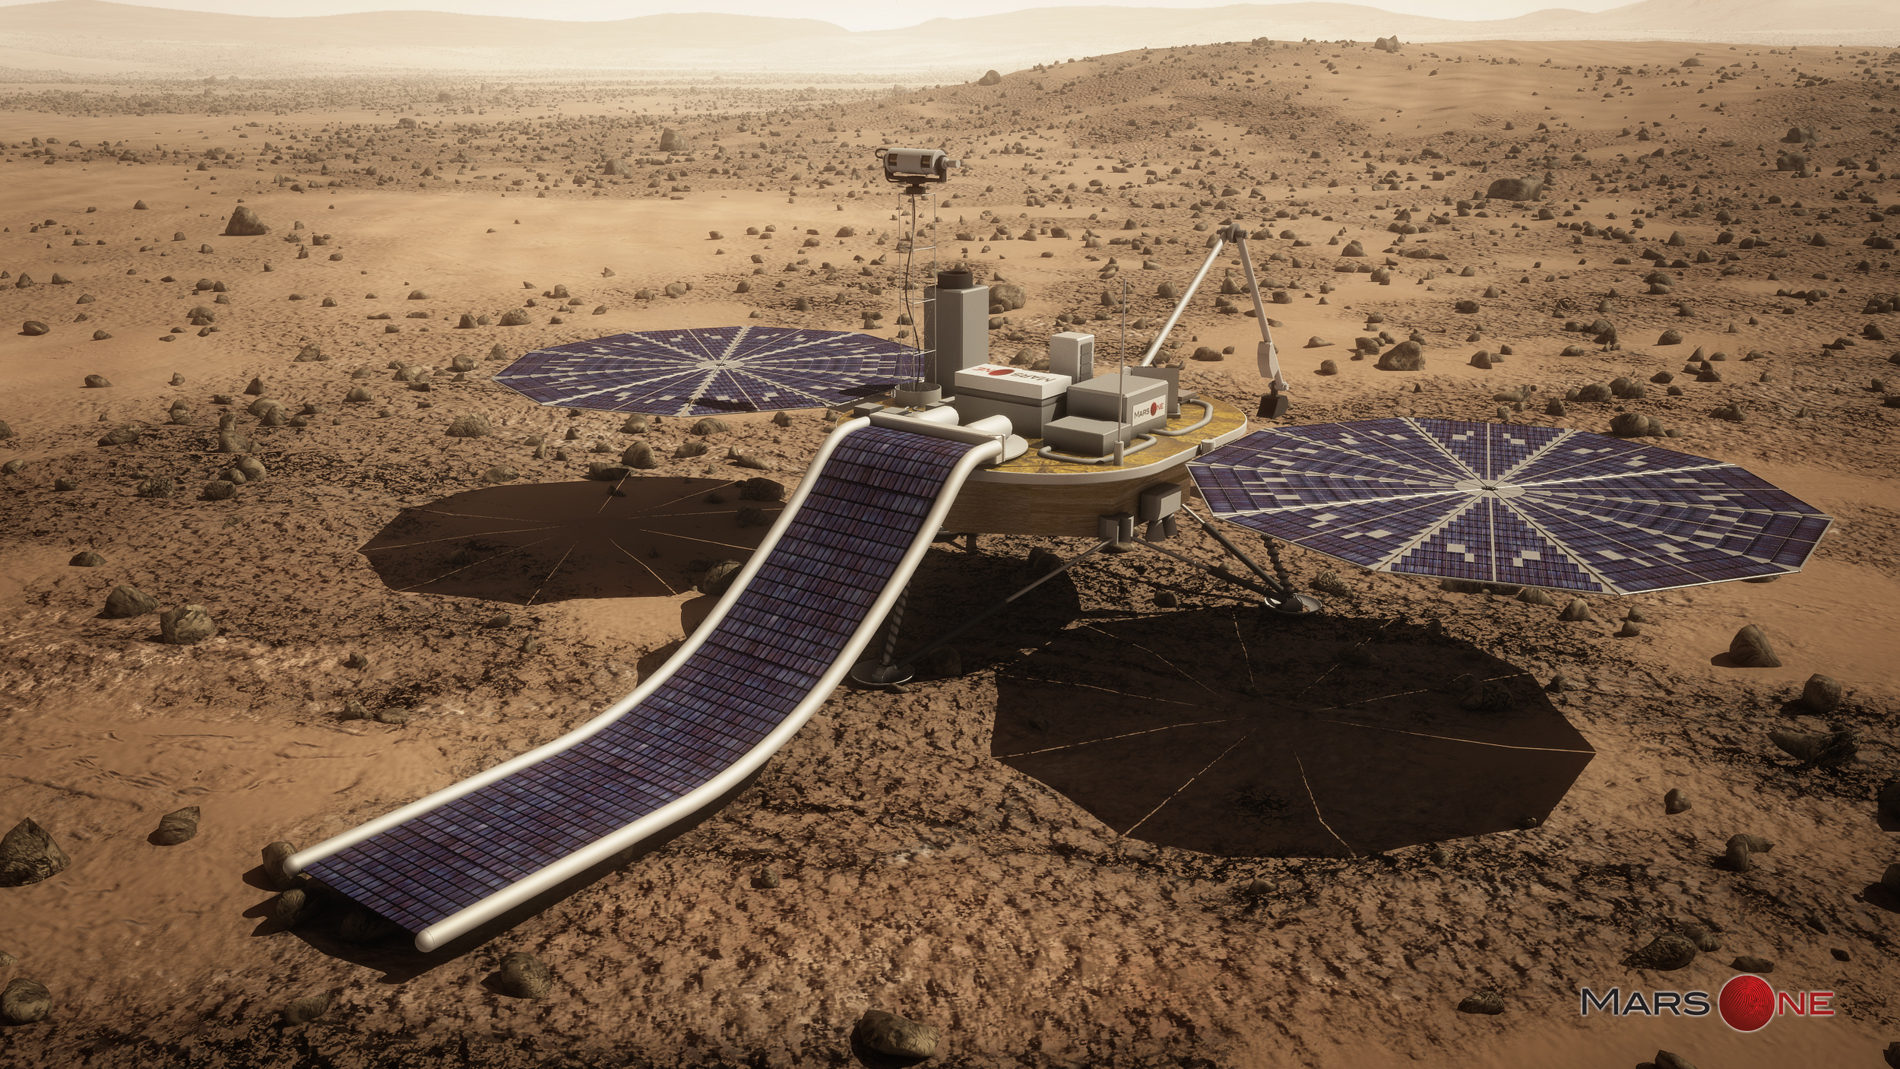 Private Mars Mission Will Beam Video from Red Planet to Earth